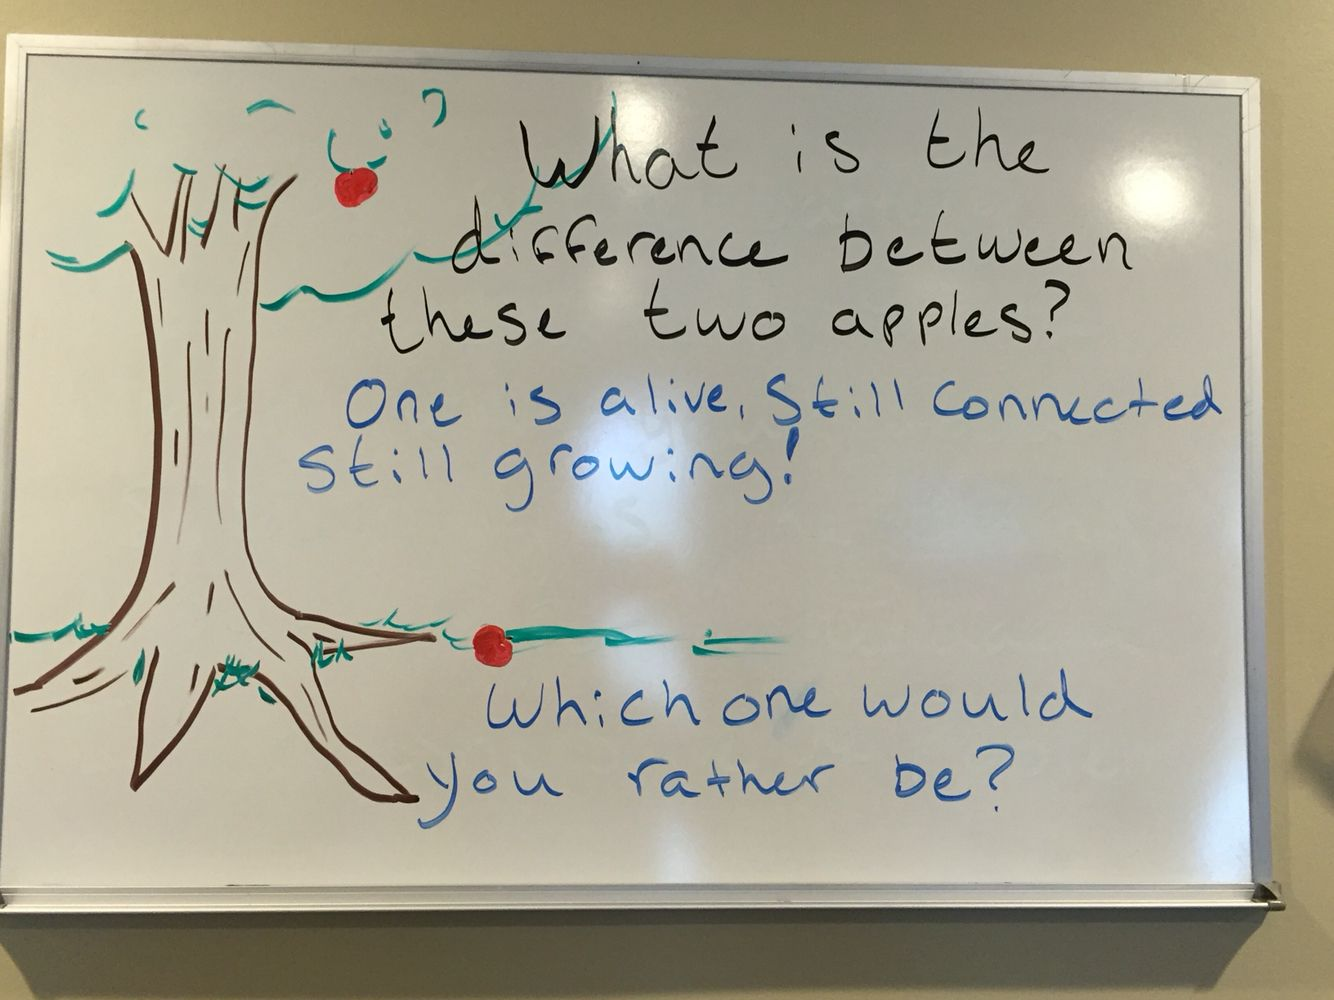 weekly chiropractic whiteboard which apple would u rather be